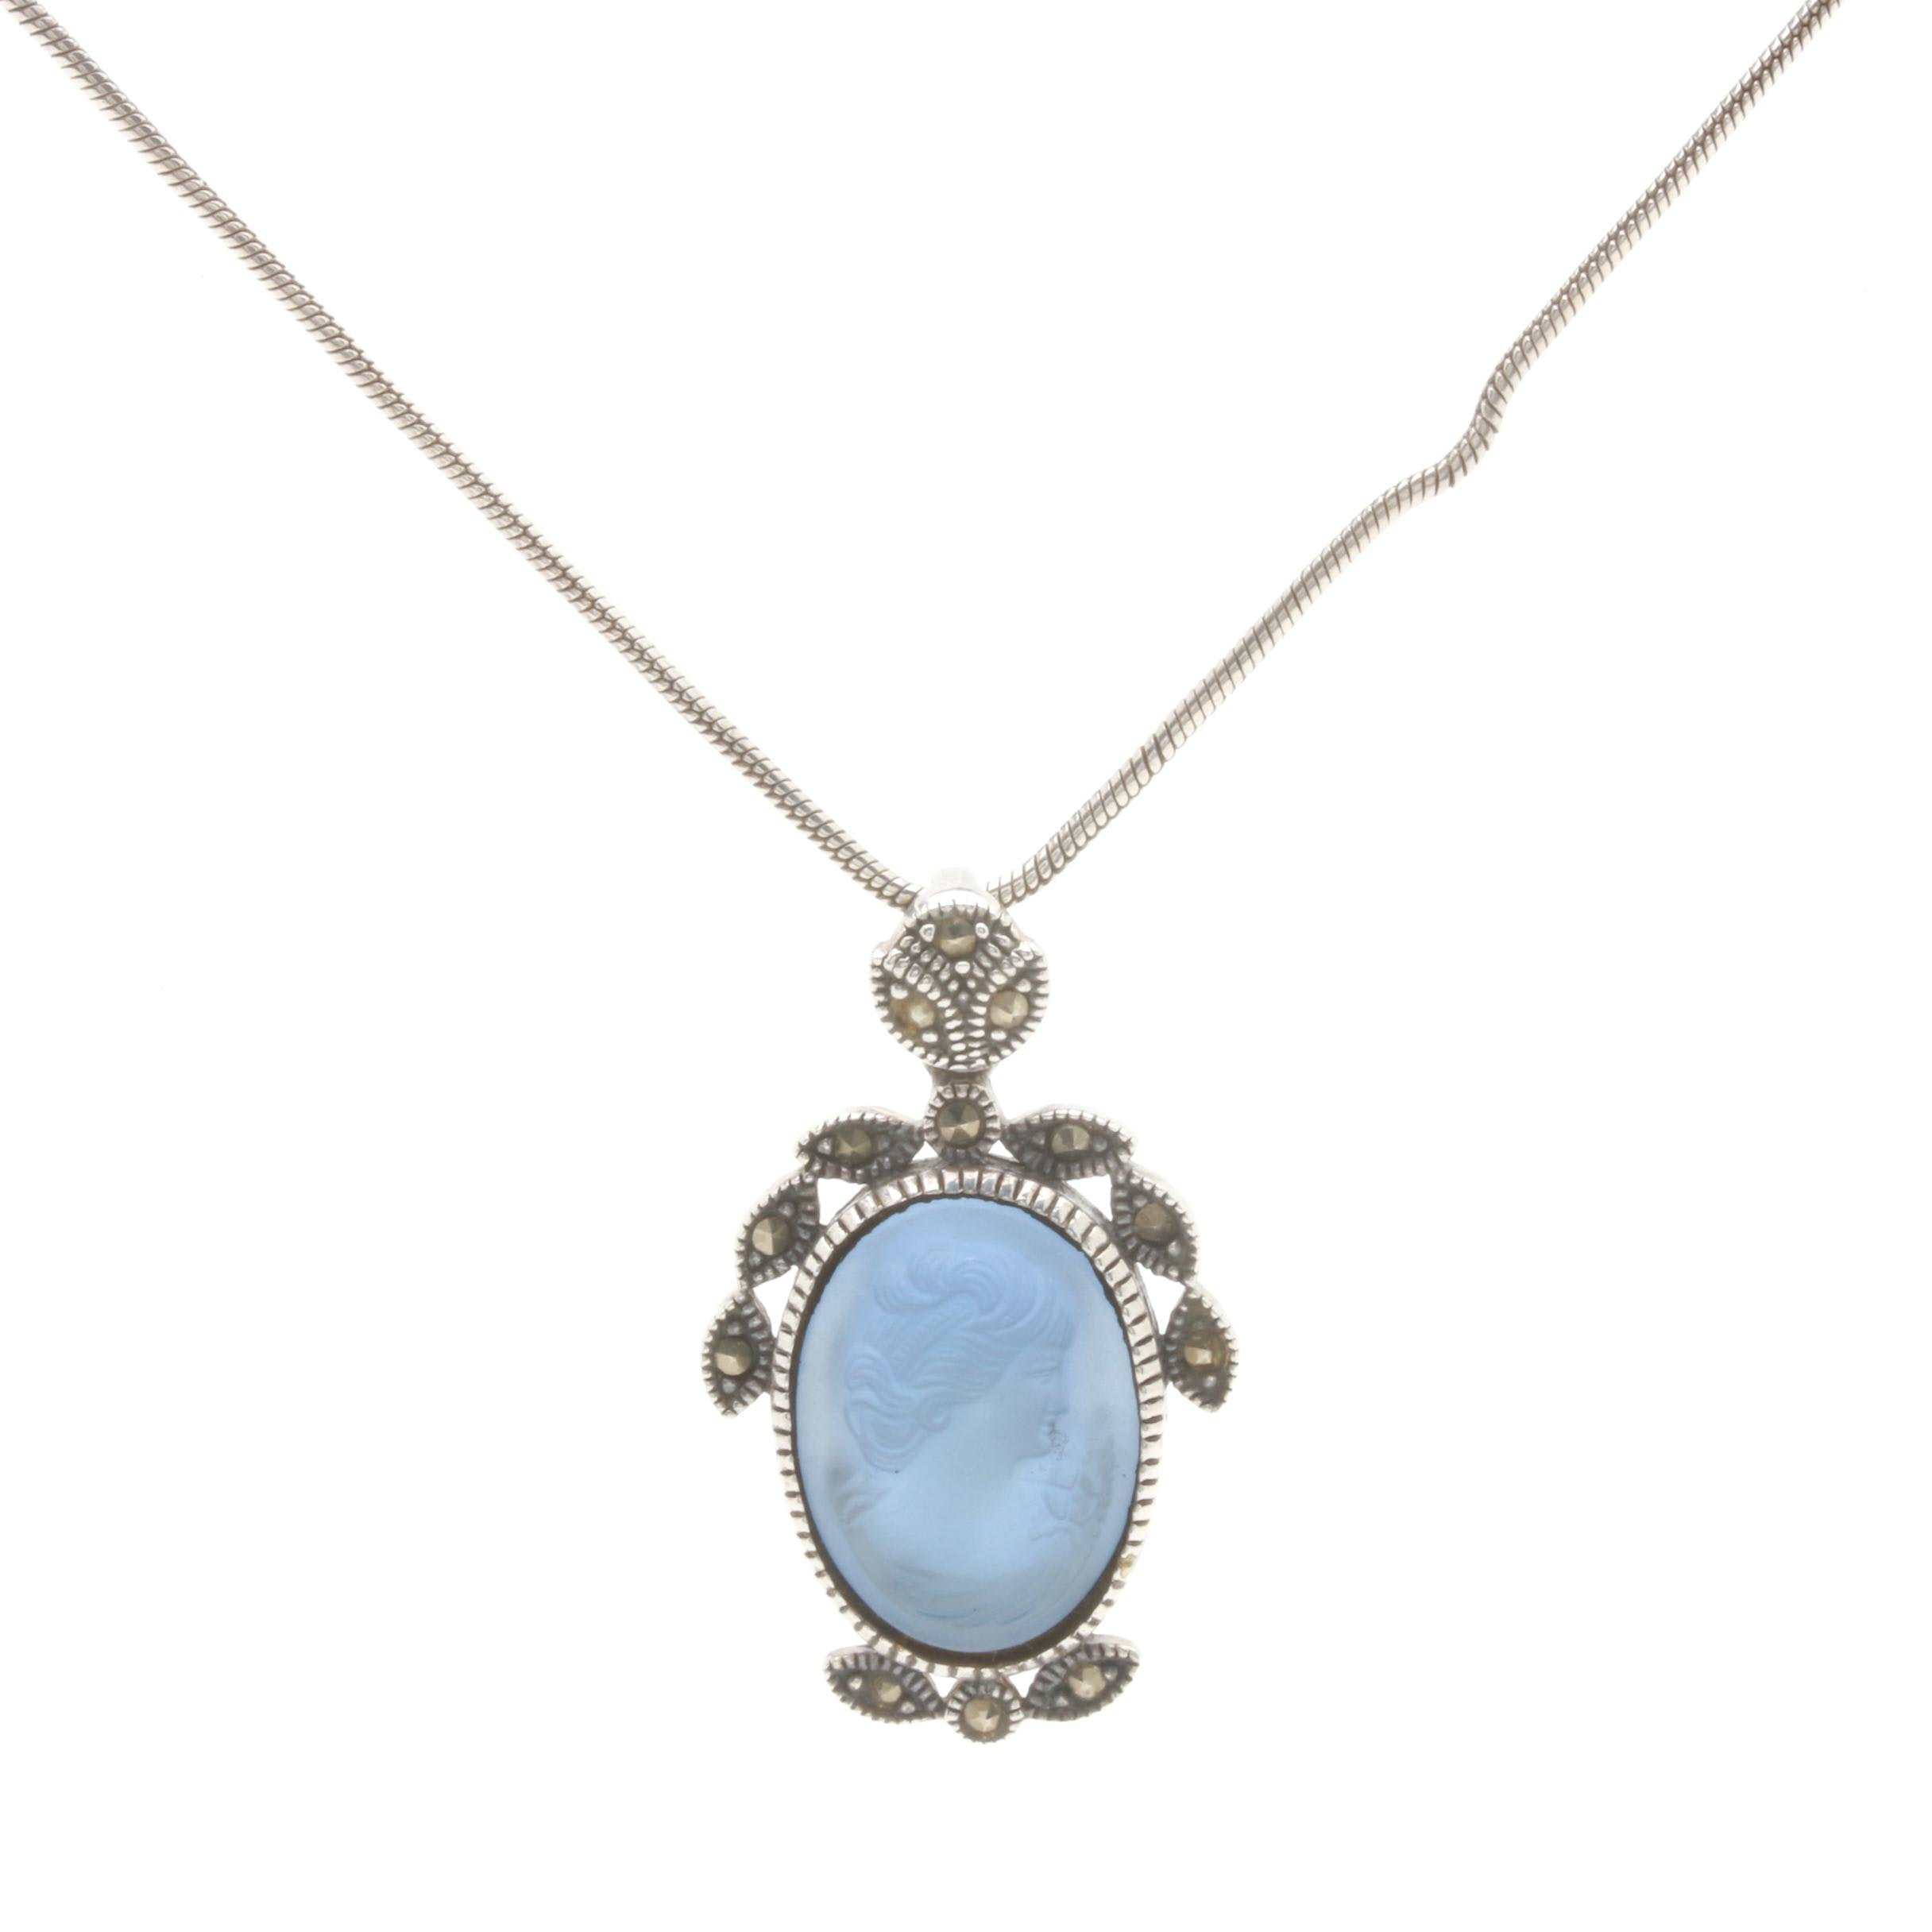 Art Deco Style Sterling Silver Glass and Marcasite Cameo Pendant Necklace